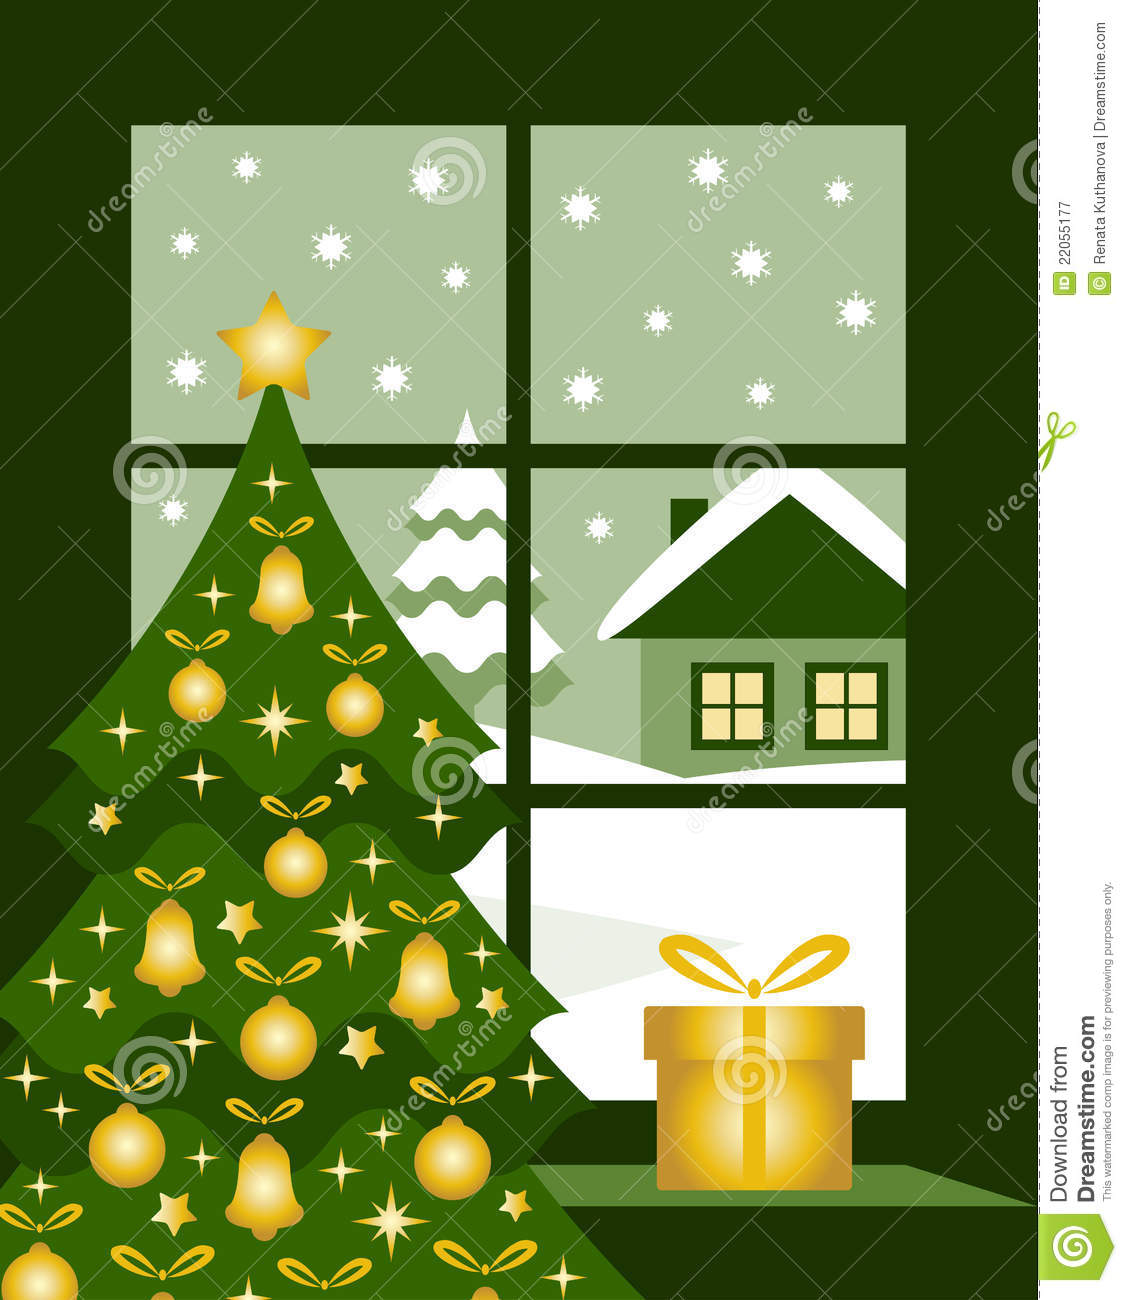 Christmas window royalty free stock photography image for 16 lighted snowflake christmas window silhouette decoration